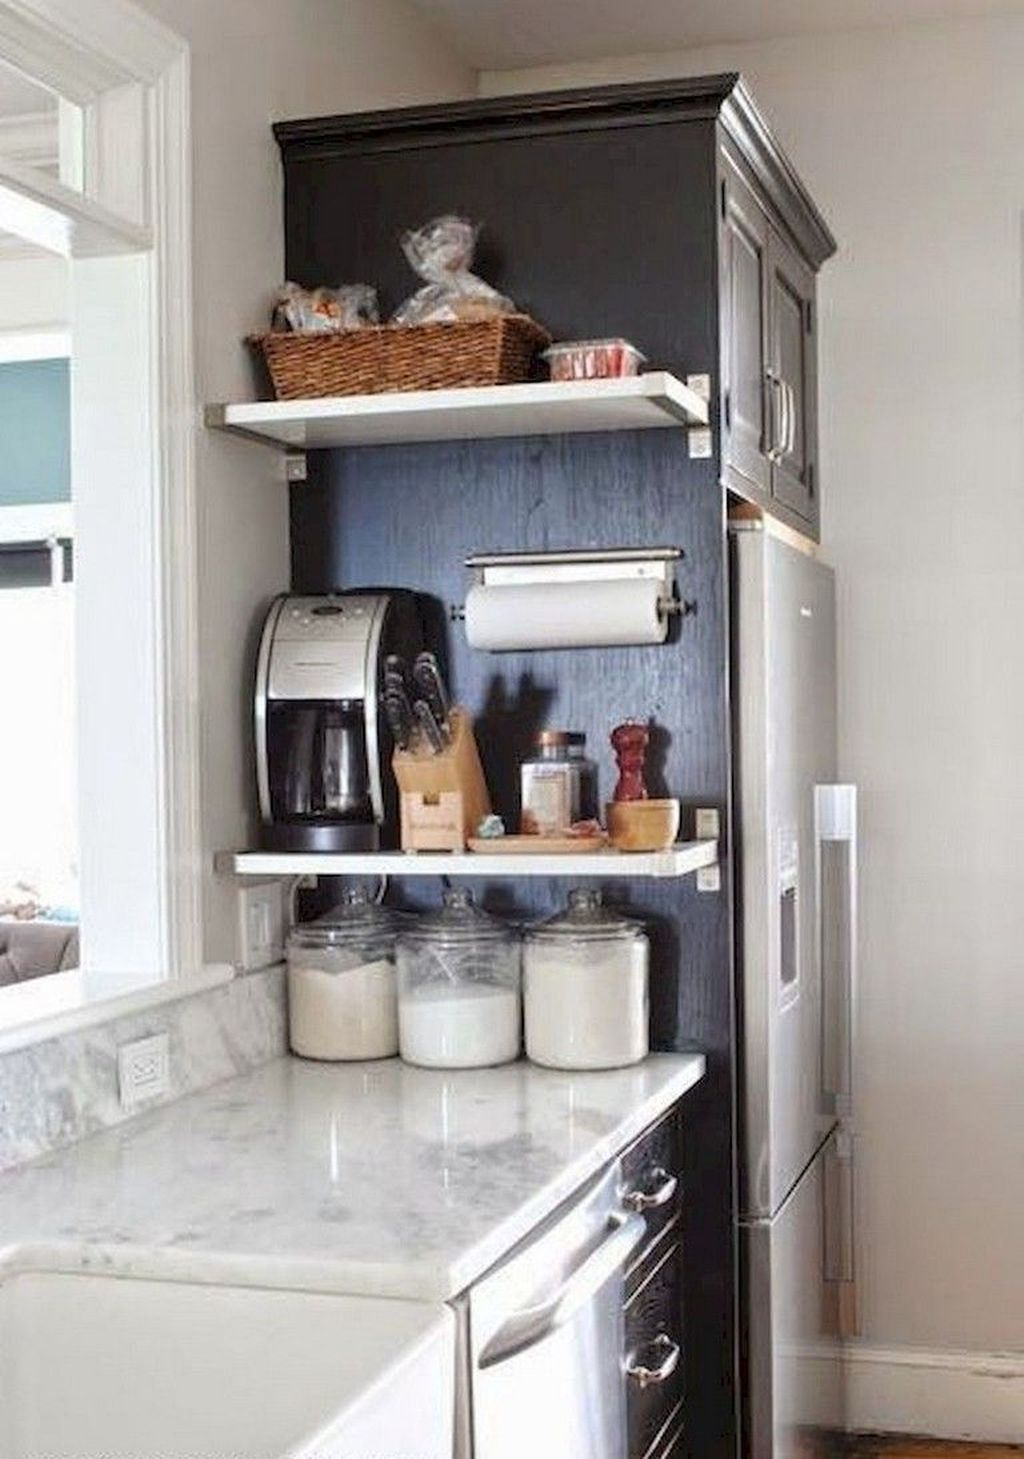 46 Adorable Kitchen Organization Ideas For Small Apartment ...